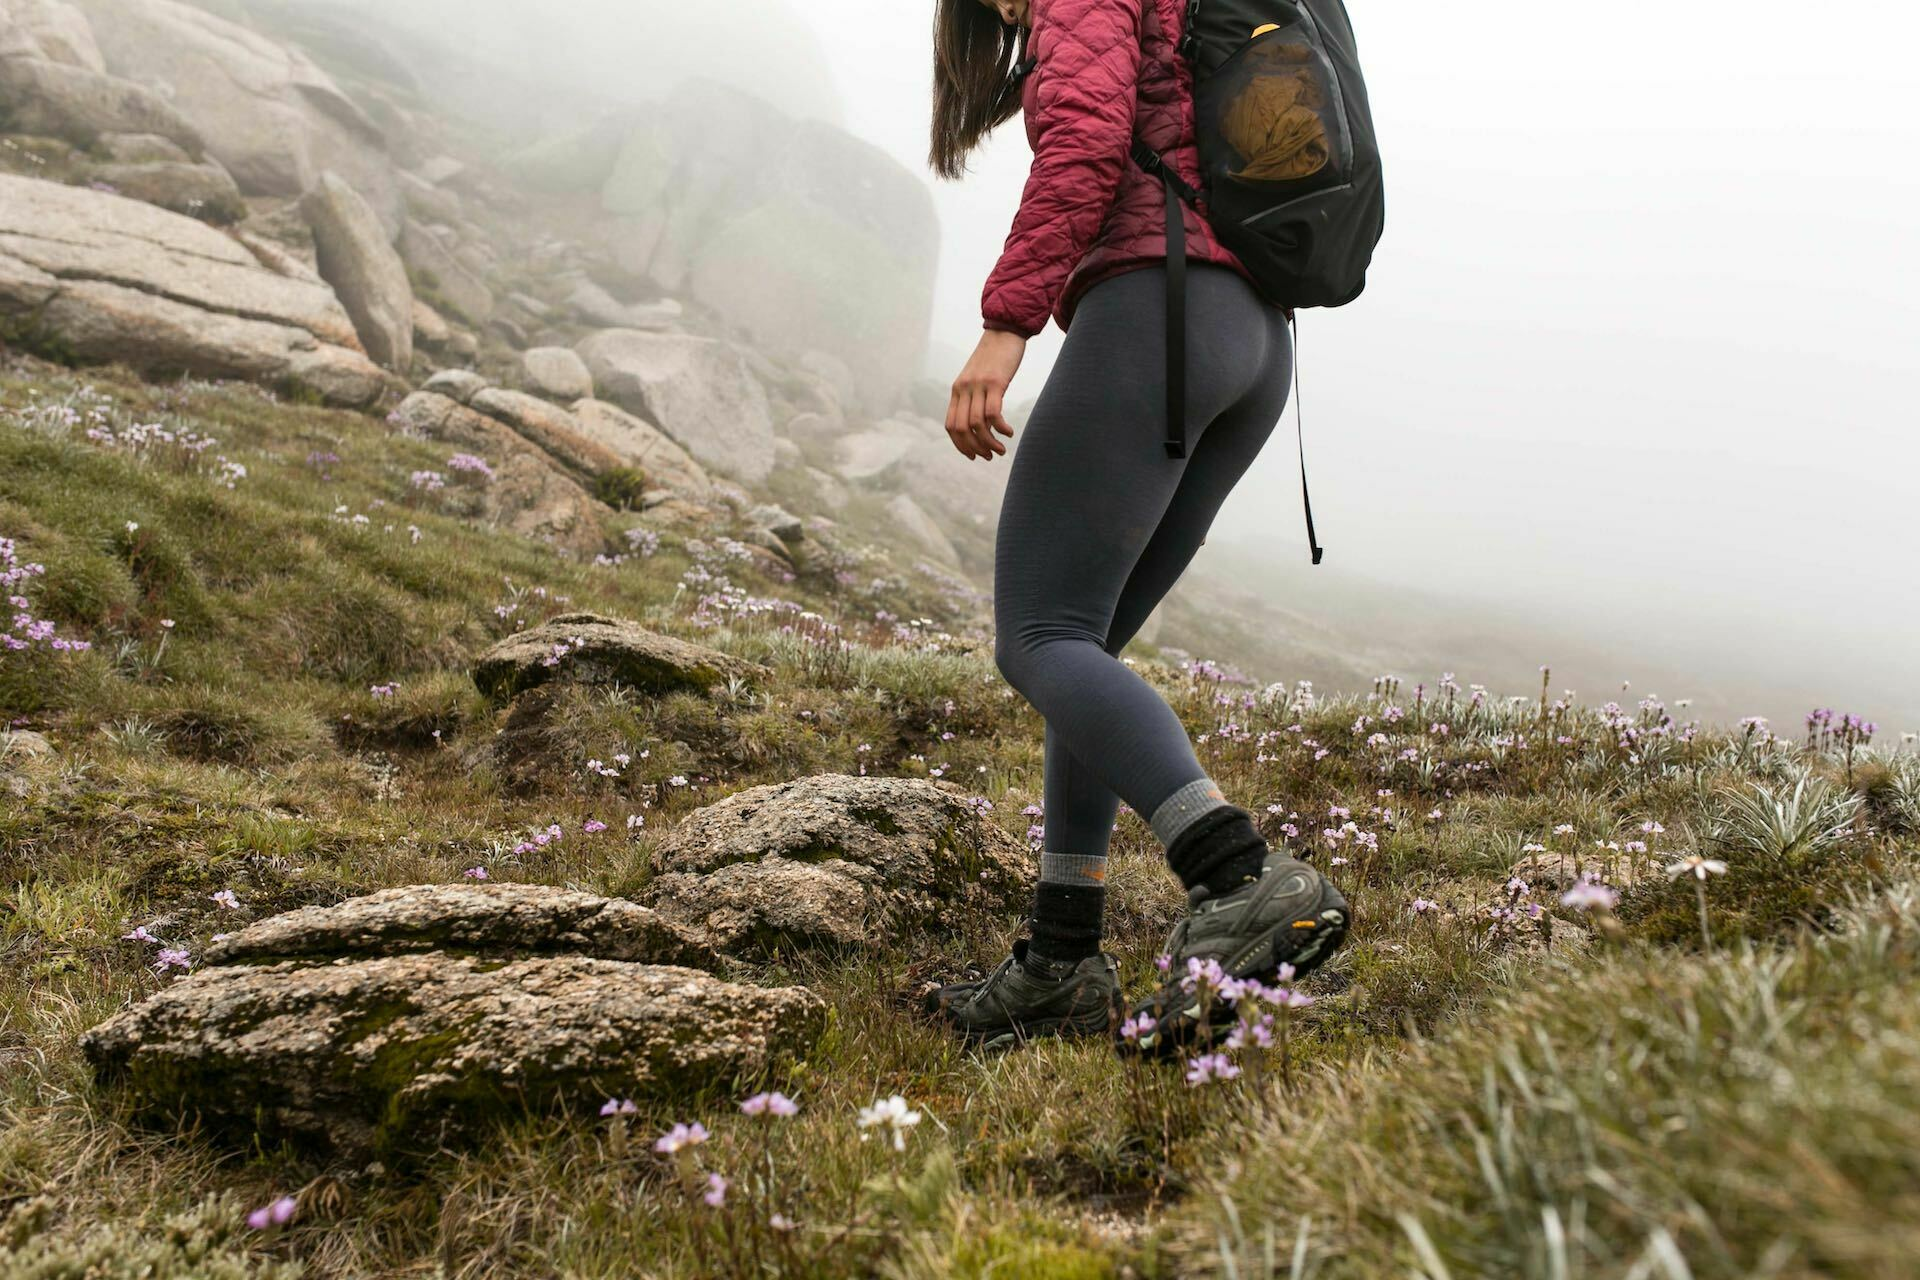 Women's Cool-Lite™ Merino Motion Seamless High Rise Tights Gear Review, photo by Thuc Do, wildflowers, mist, mountains, hike